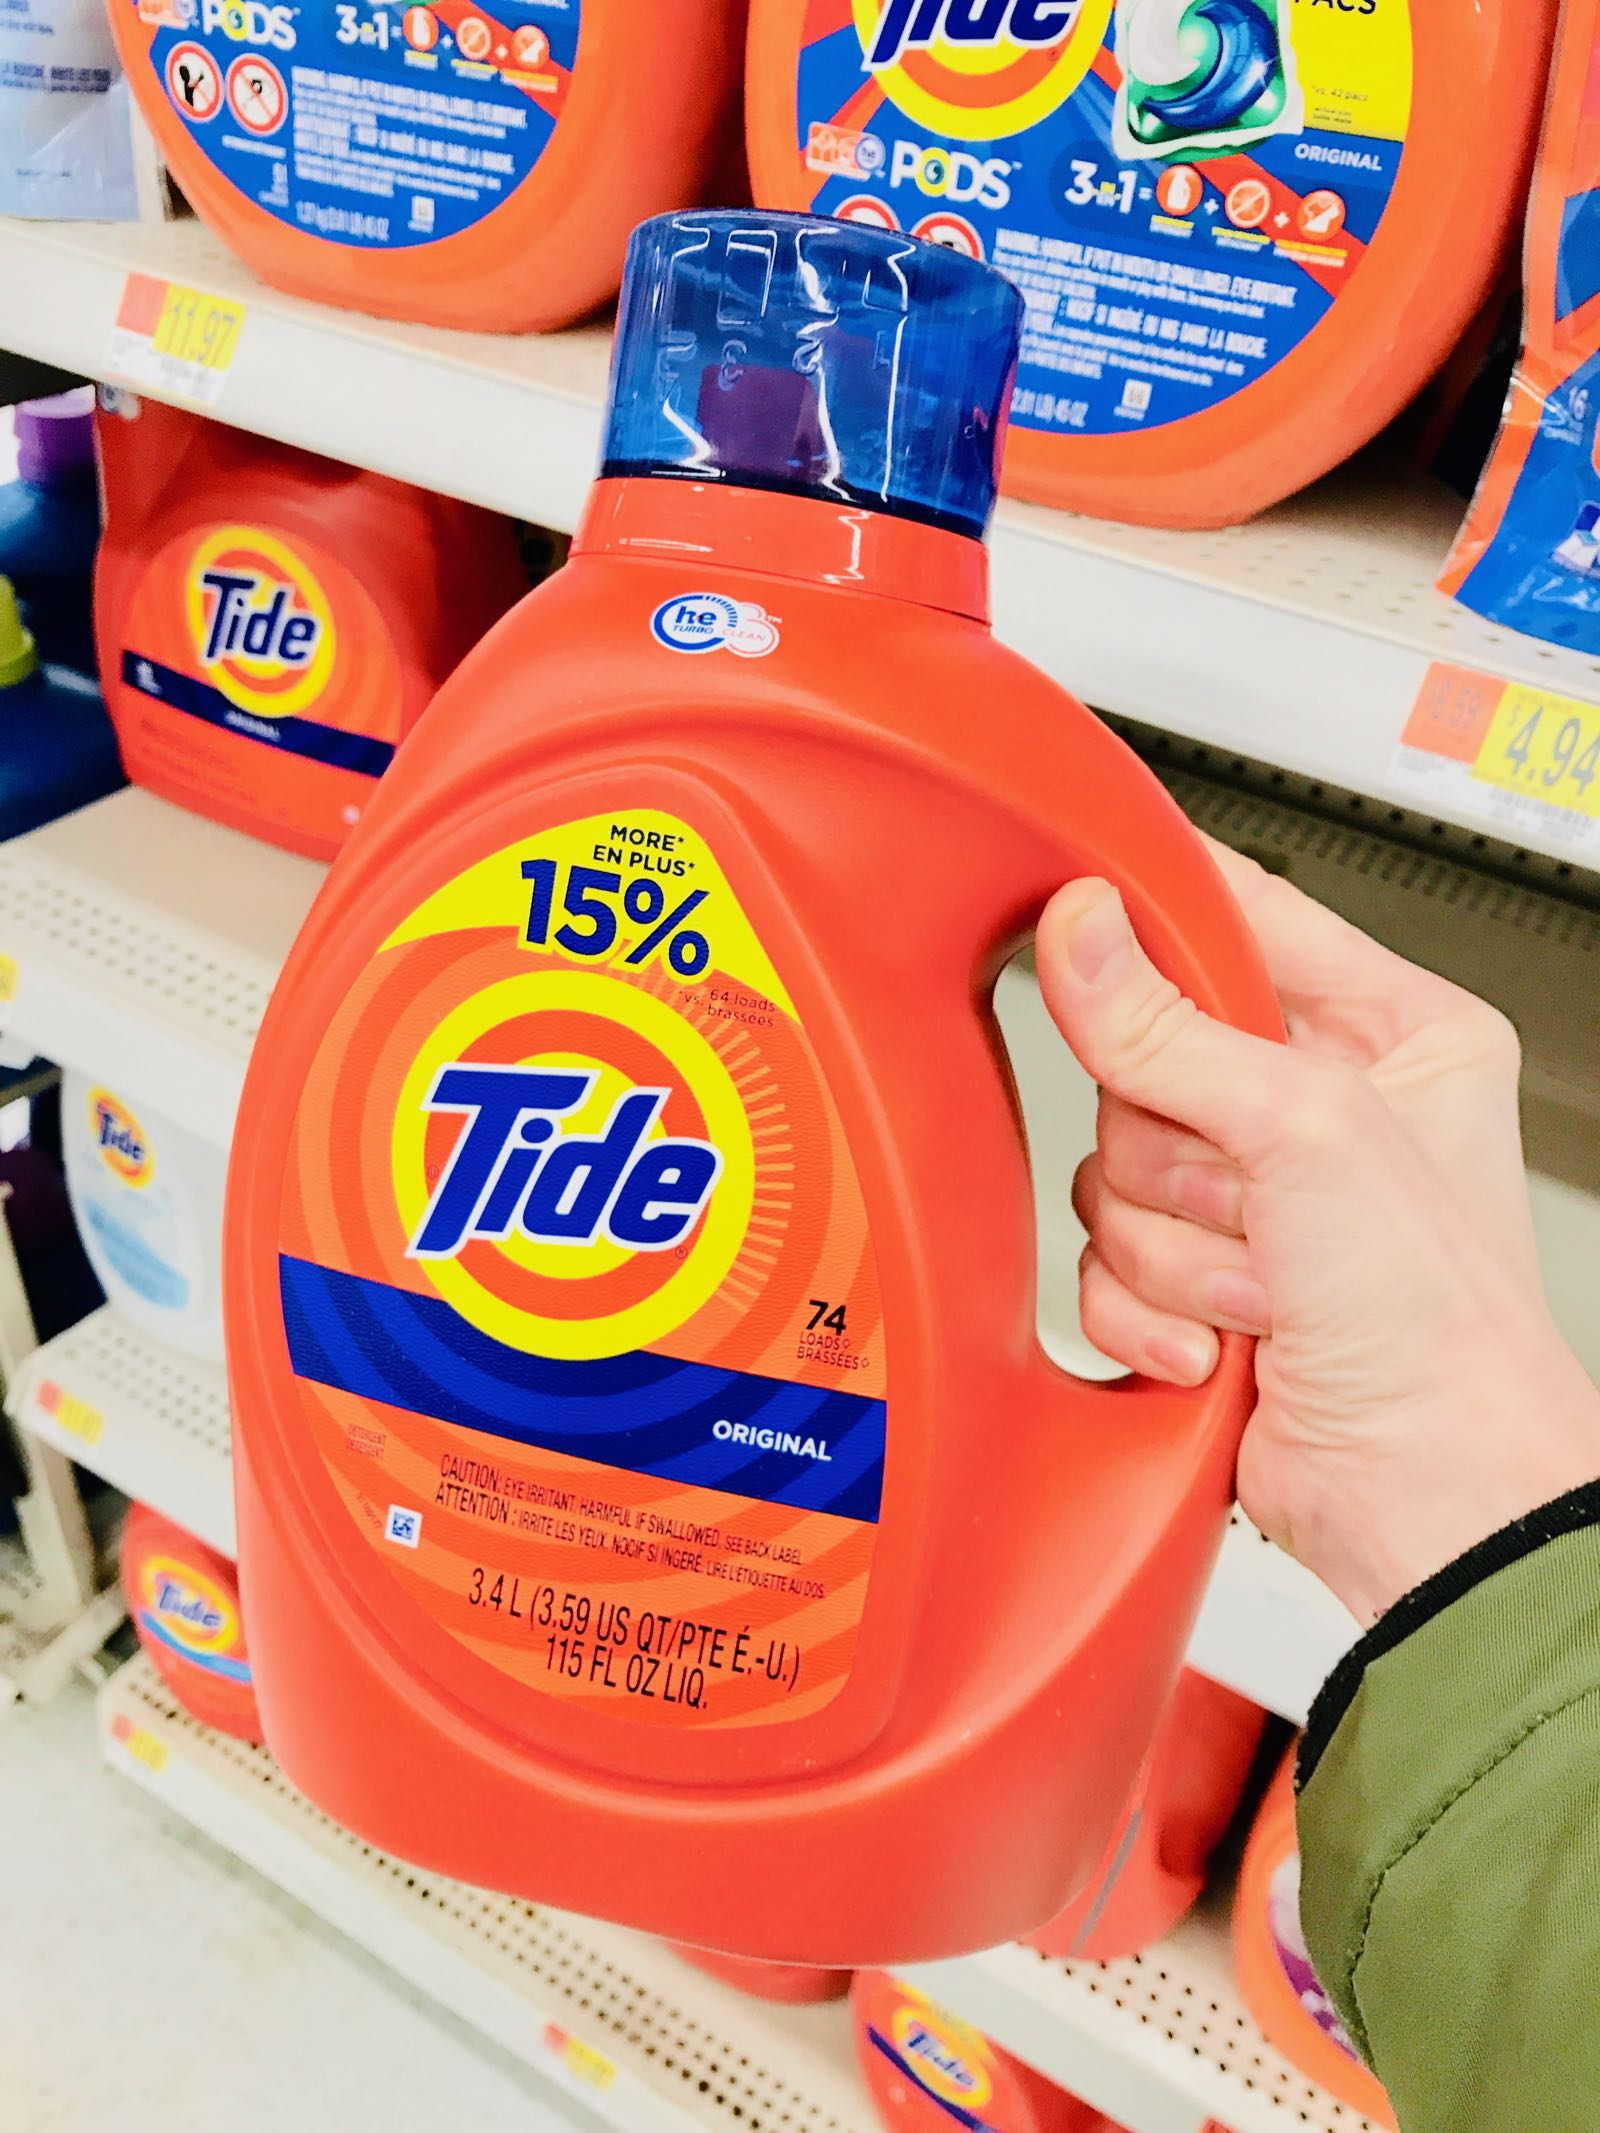 Print Tide coupons at home!